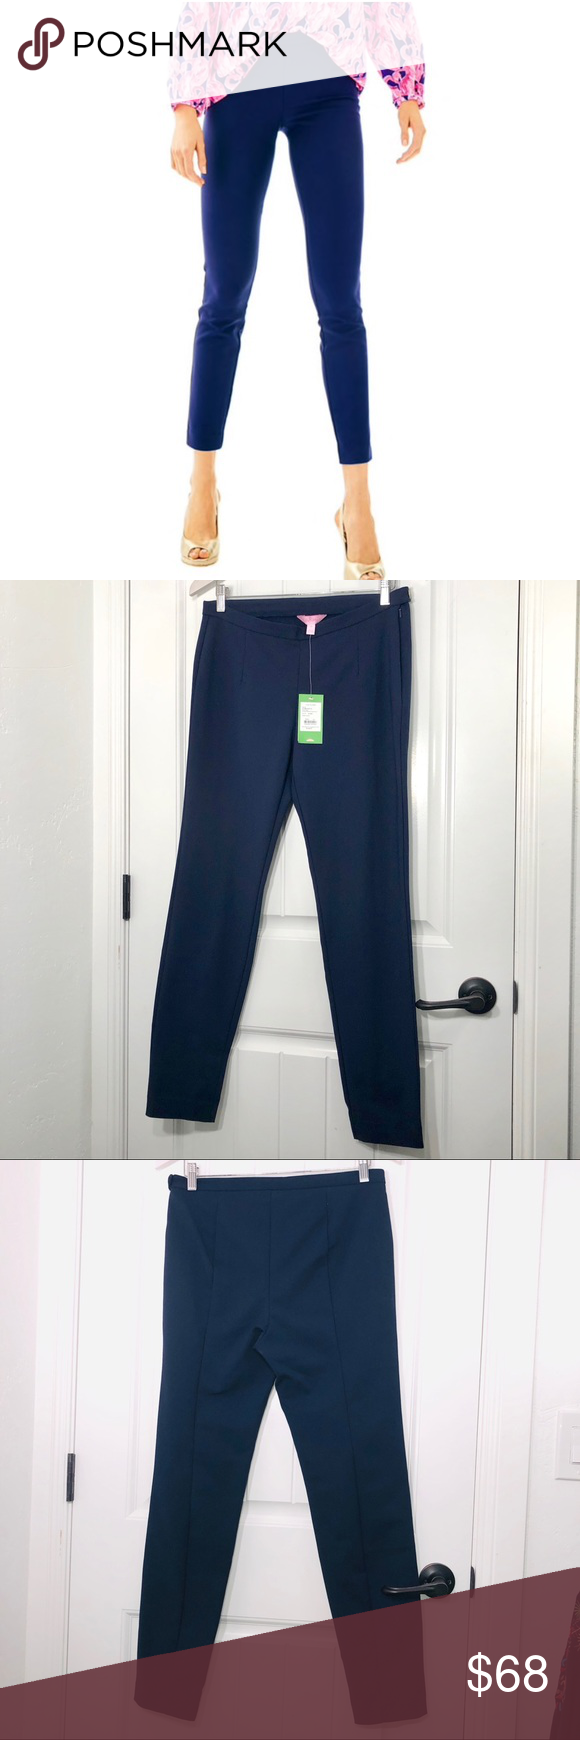 Lilly Pulitzer Midnight Navy Blue Alessia Stretch Dinner Pants Pick Size